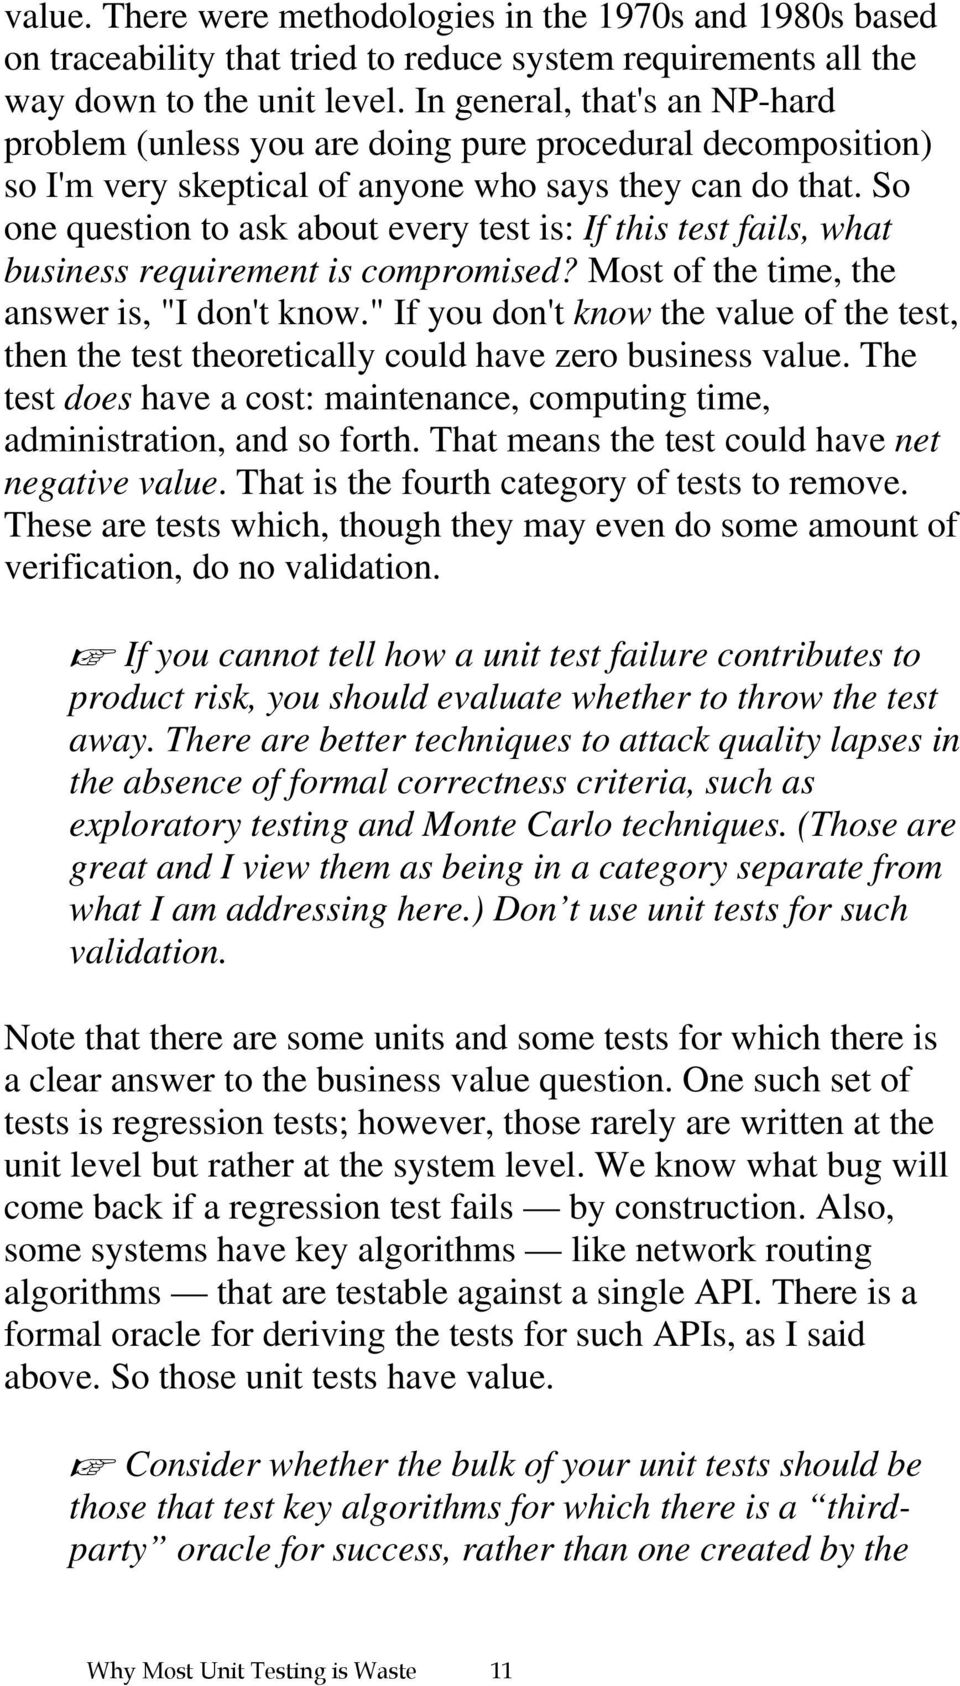 "So one question to ask about every test is: If this test fails, what business requirement is compromised? Most of the time, the answer is, ""I don't know."